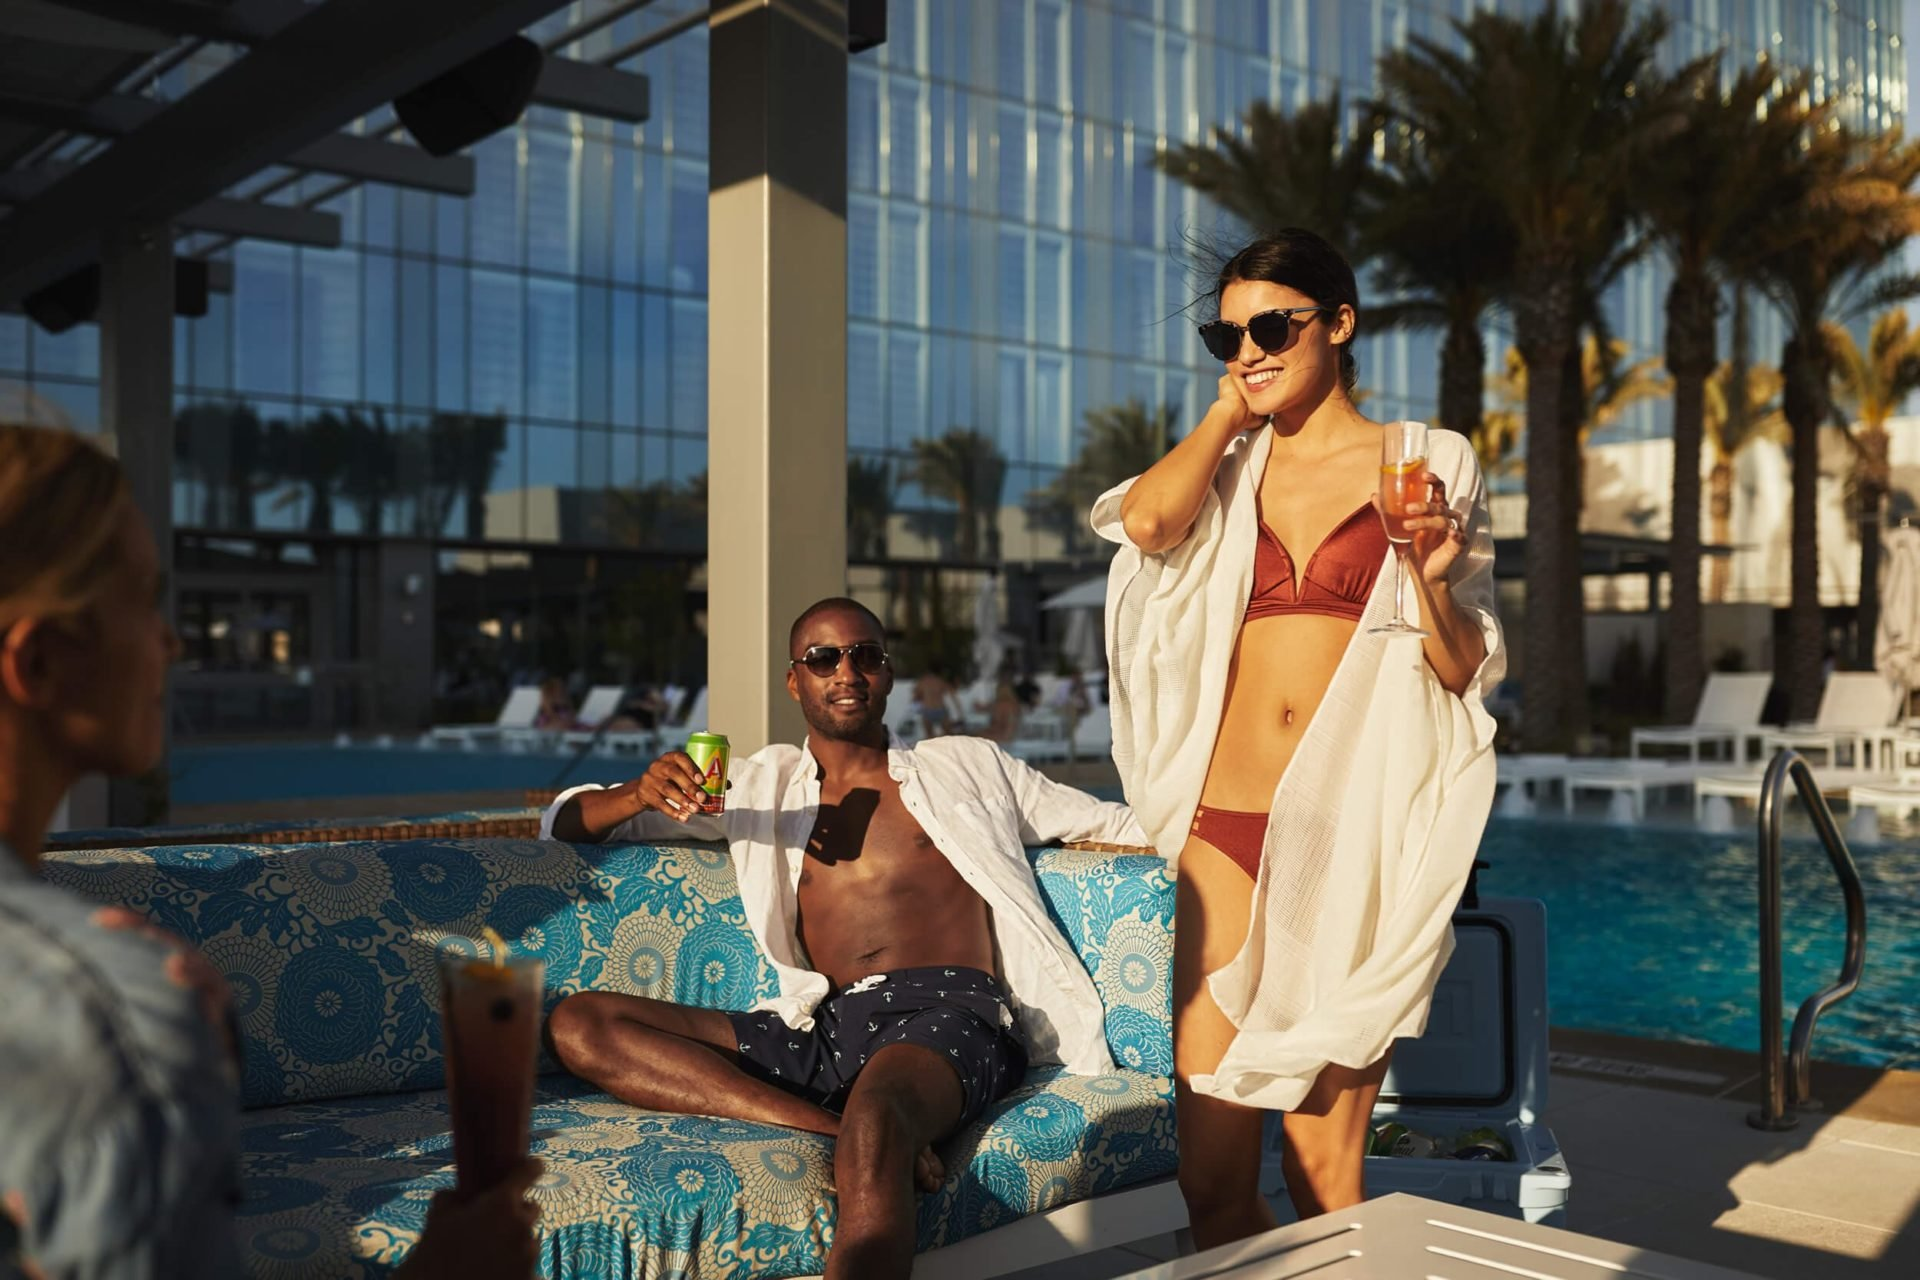 Smiling couple brightly lit by facing sunset while enjoying drinks and conversation in VIP Cabanas with pool and exterior in the background